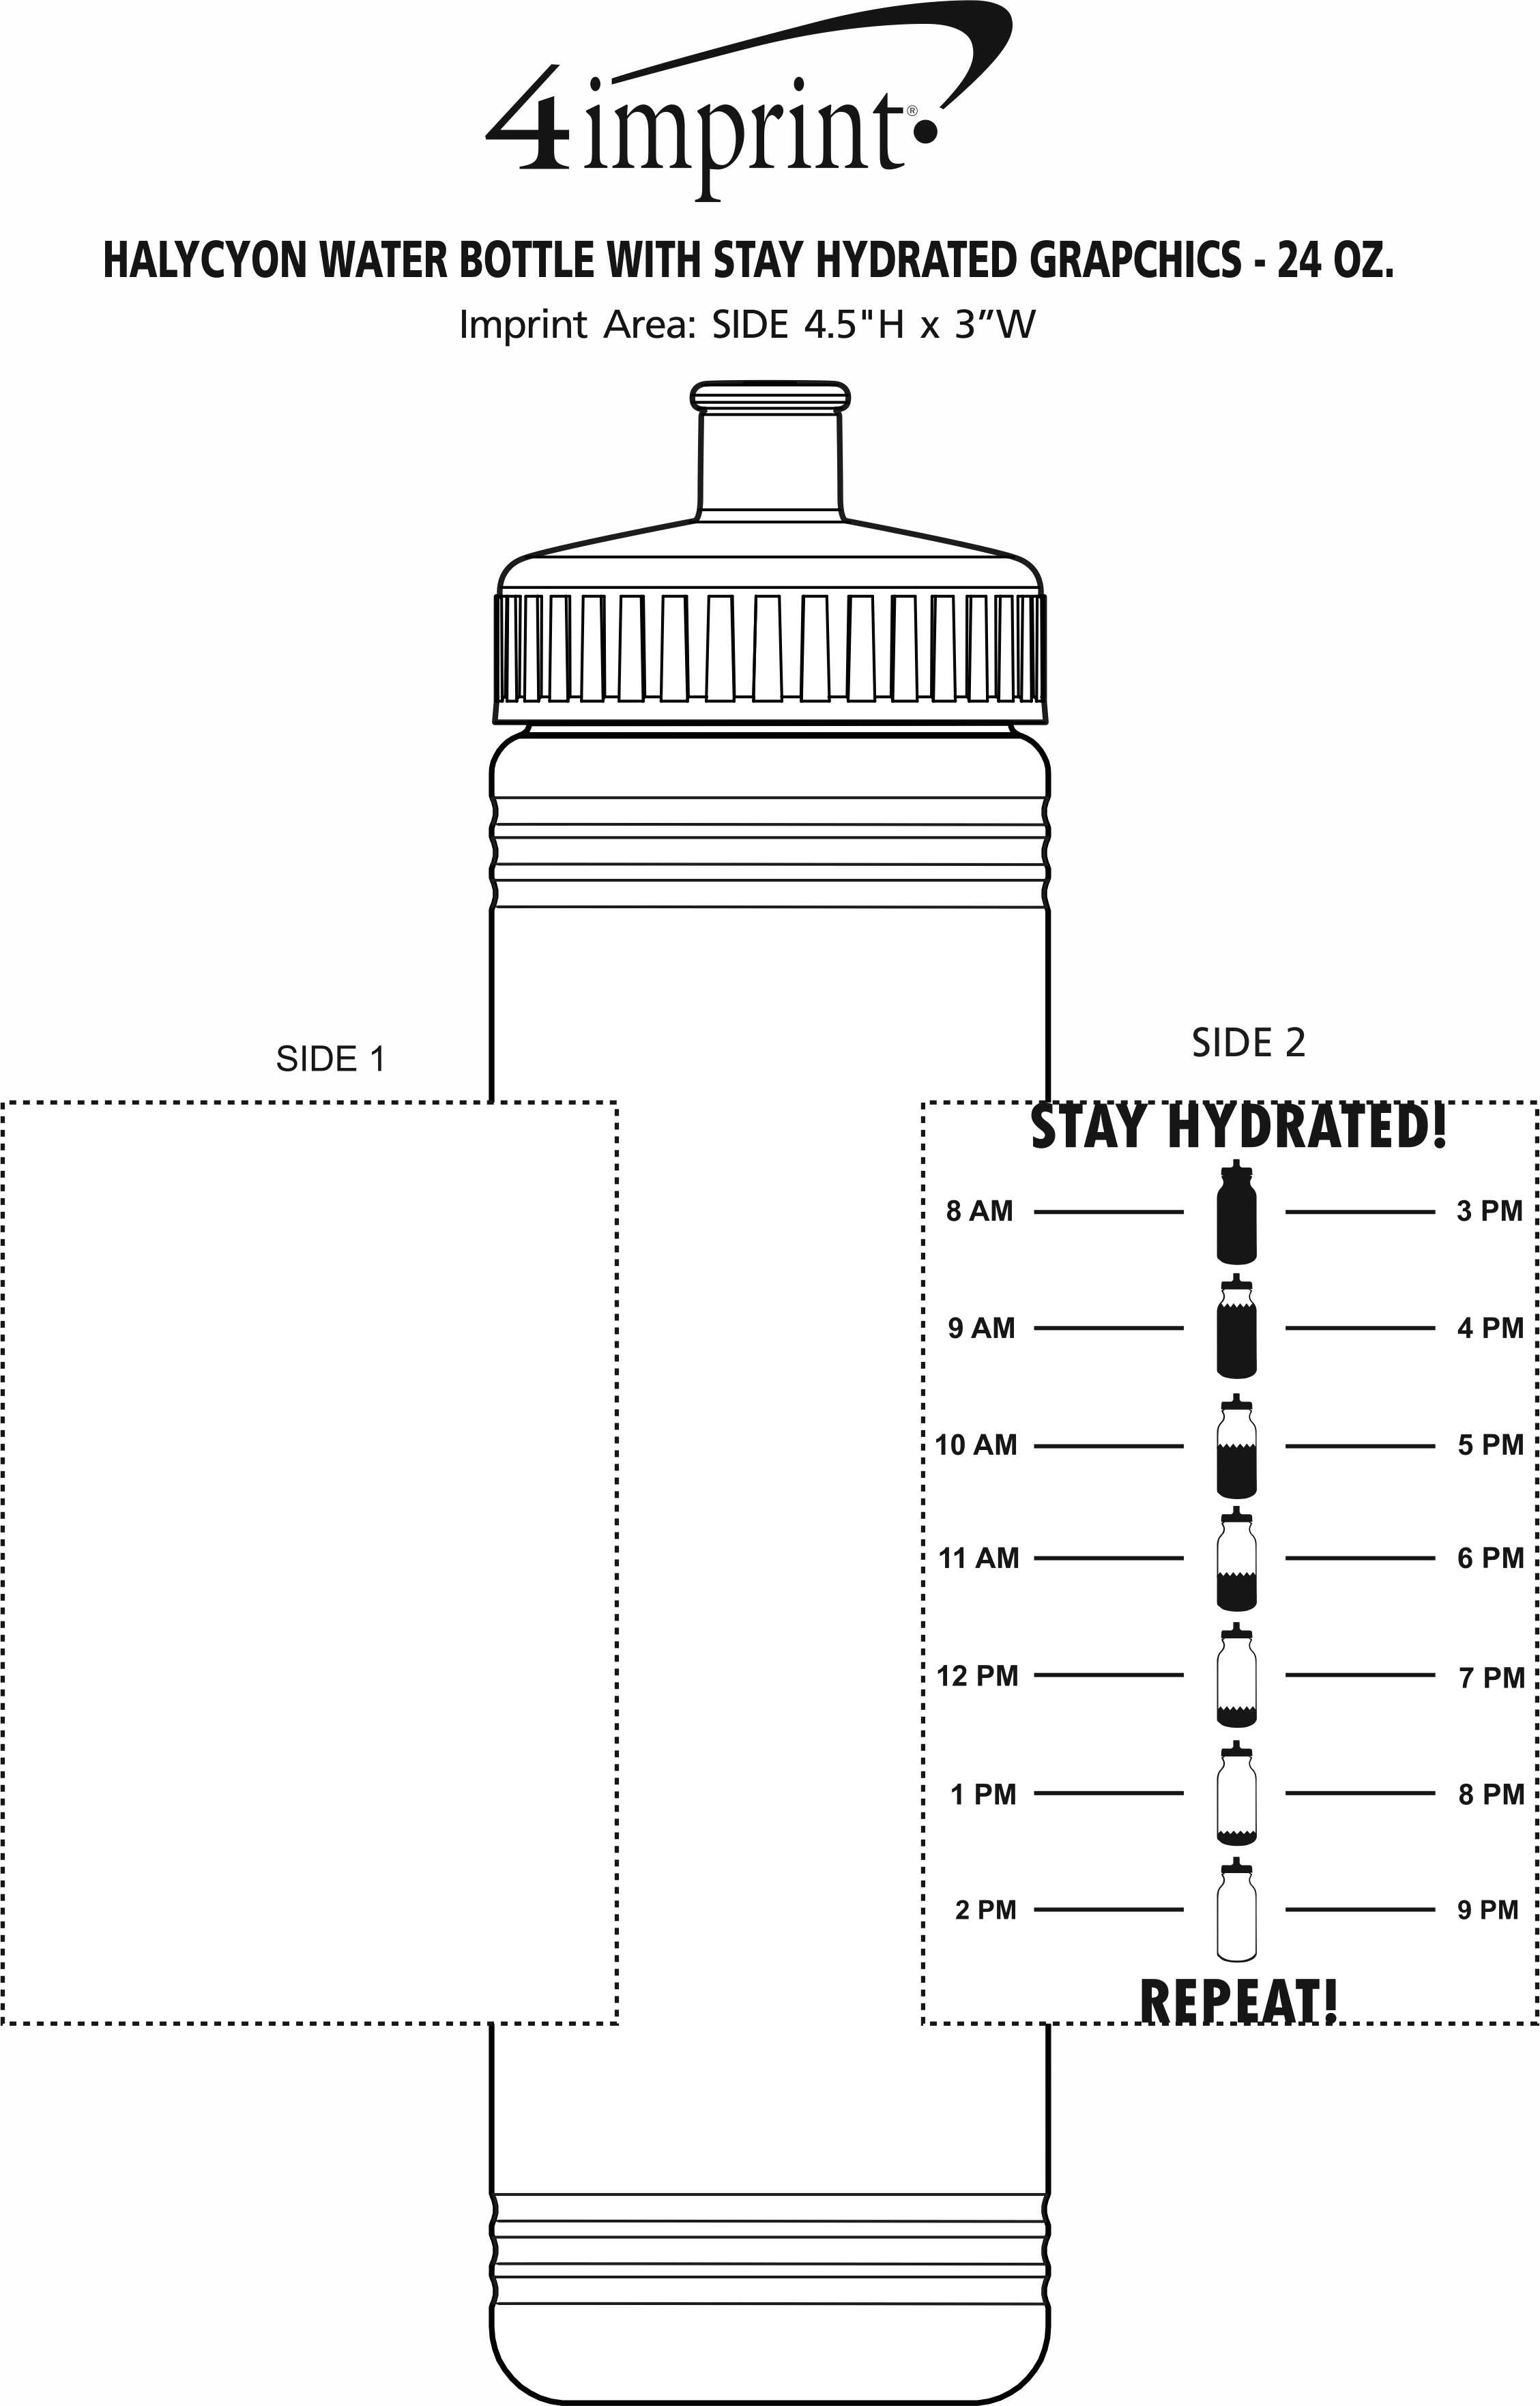 Imprint Area of Halycyon Water Bottle with Stay Hydrated Grapchics - 24 oz.